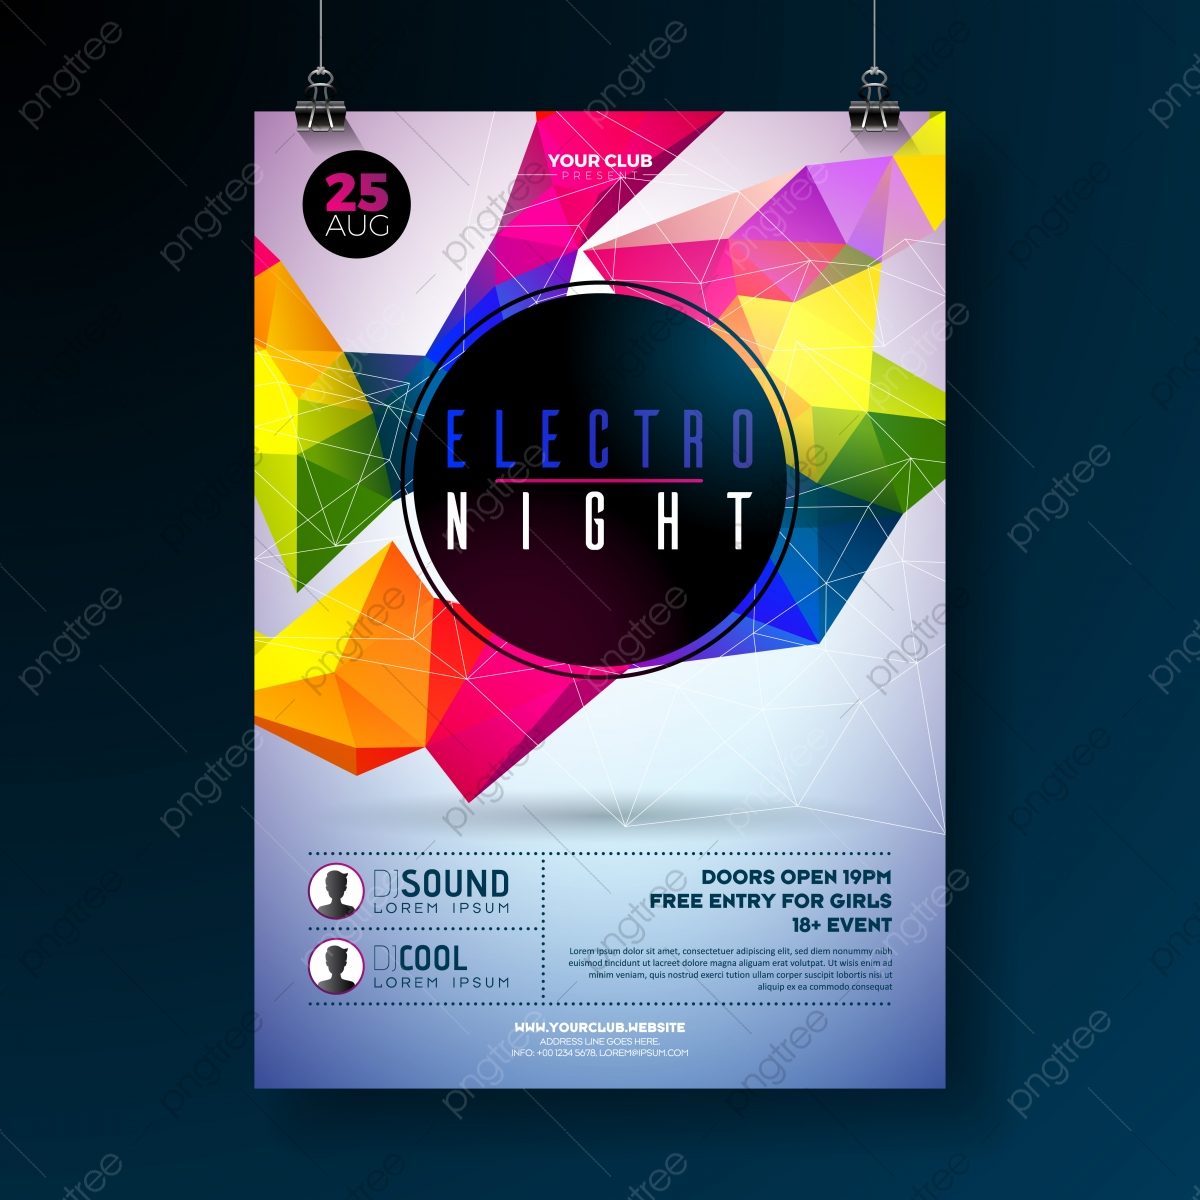 Night Dance Party Poster Design With Abstract Modern Geometric Shapes On Shiny Background Electro Style Disco Club Template For Abstract Music Event Flyer Invitation Or Promotional Banner Template For Free Download On